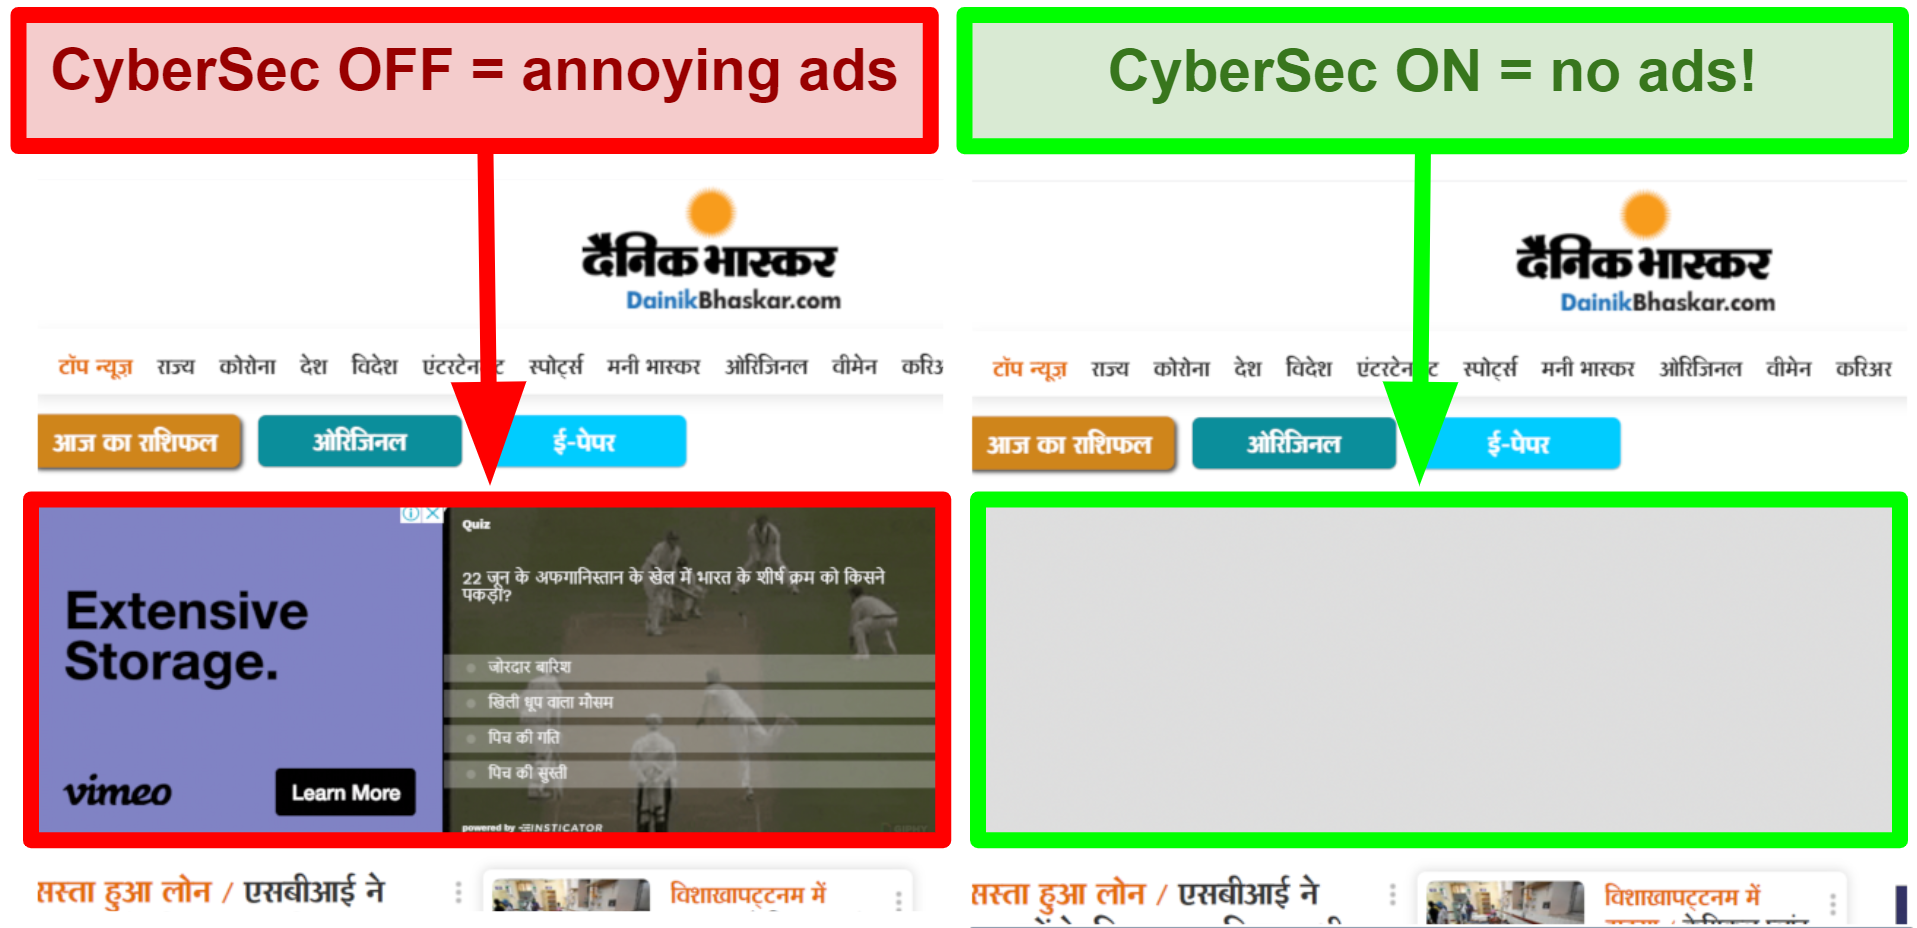 Screenshot of NordVPN on the Times of India website with Cybersec off and ads showing, compared to Cybersec on and no ads showing